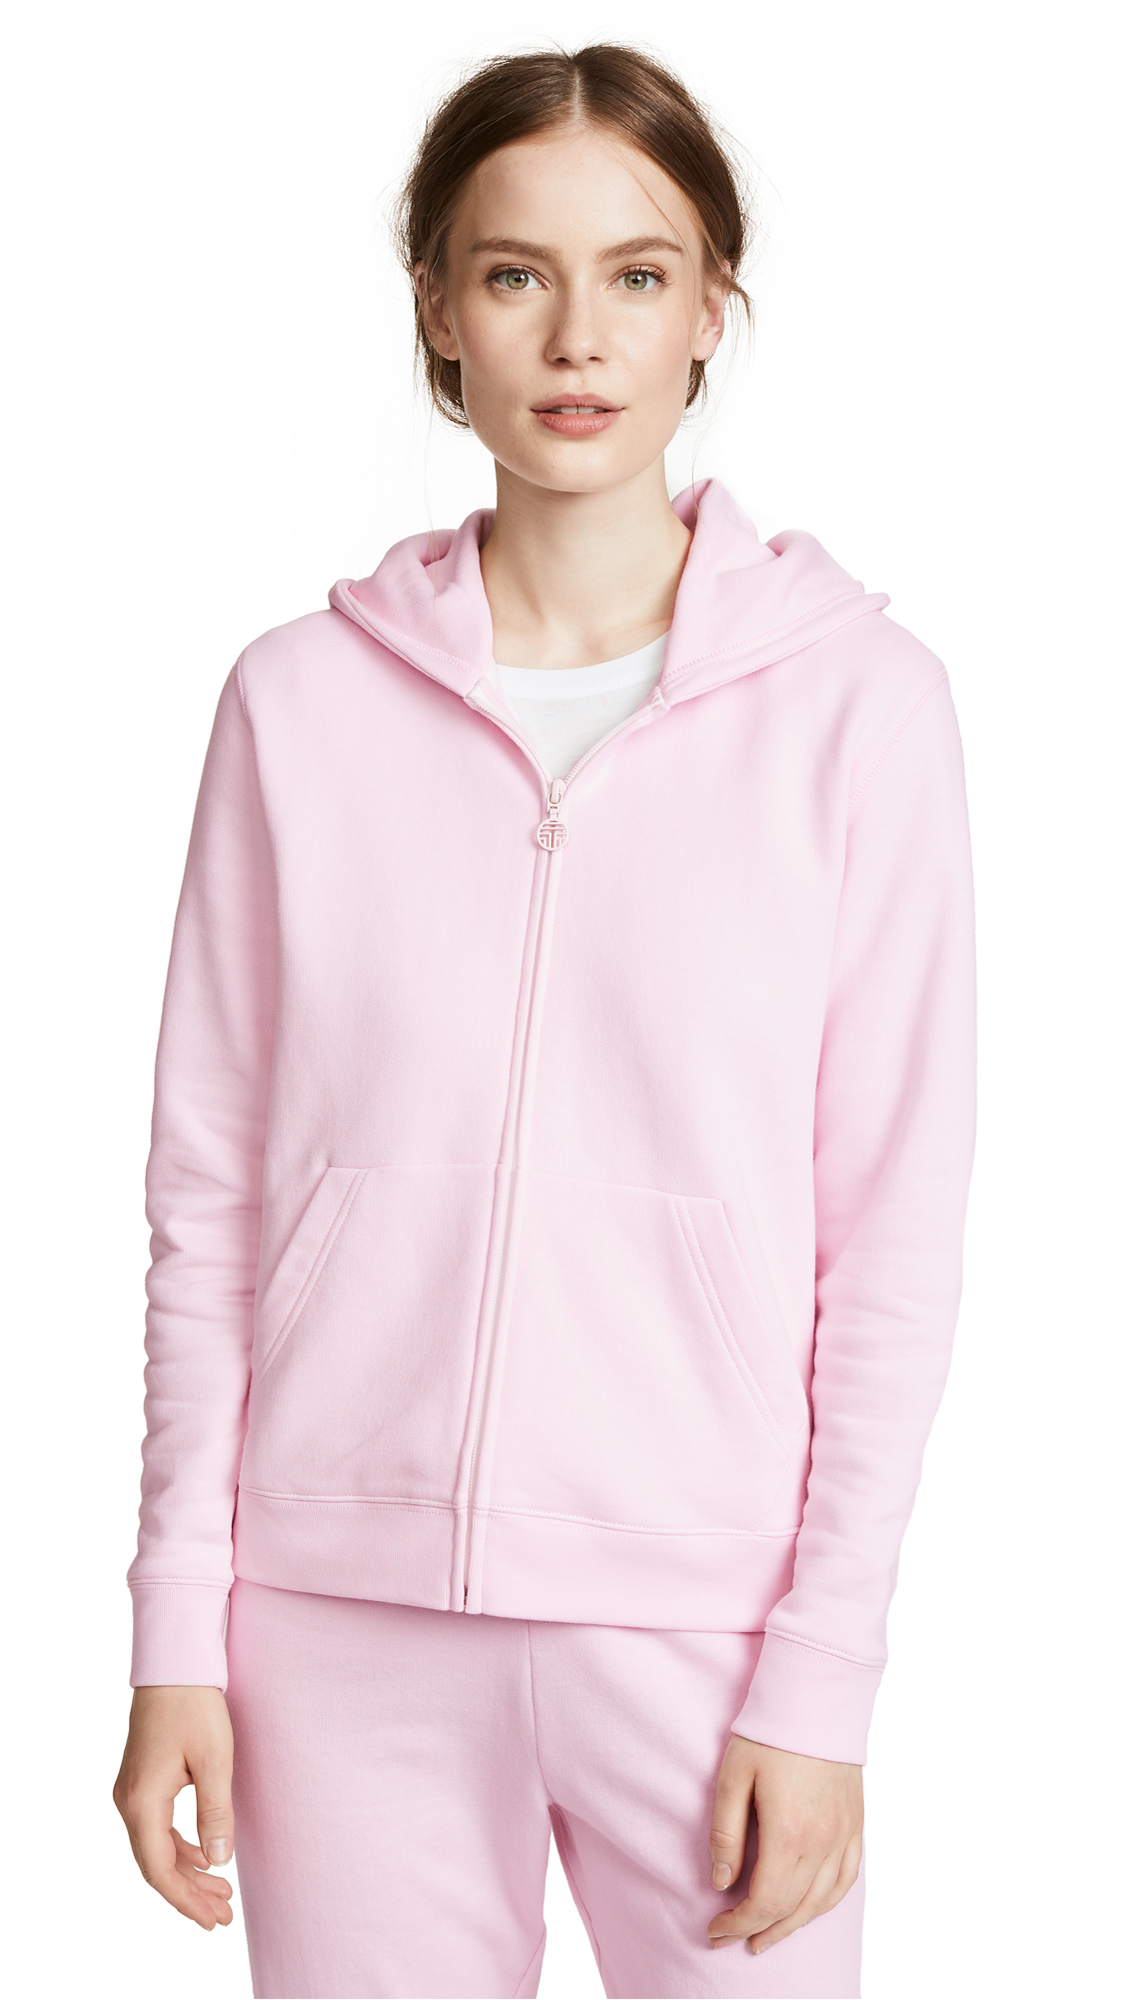 Tory Sport French Terry Zip Hoodie In Cotton Pink